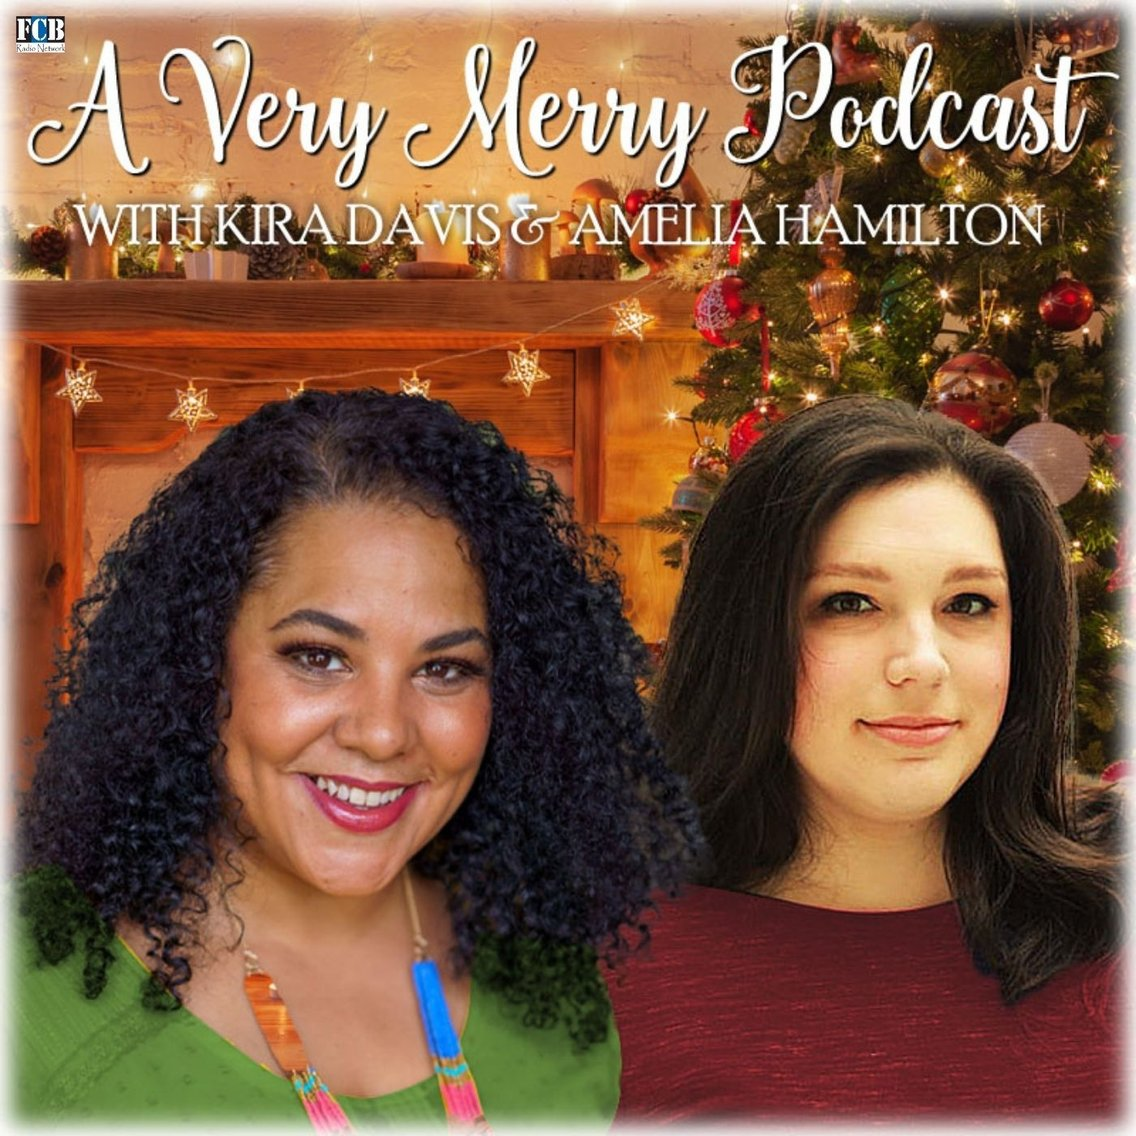 A Very Merry Podcast - Cover Image